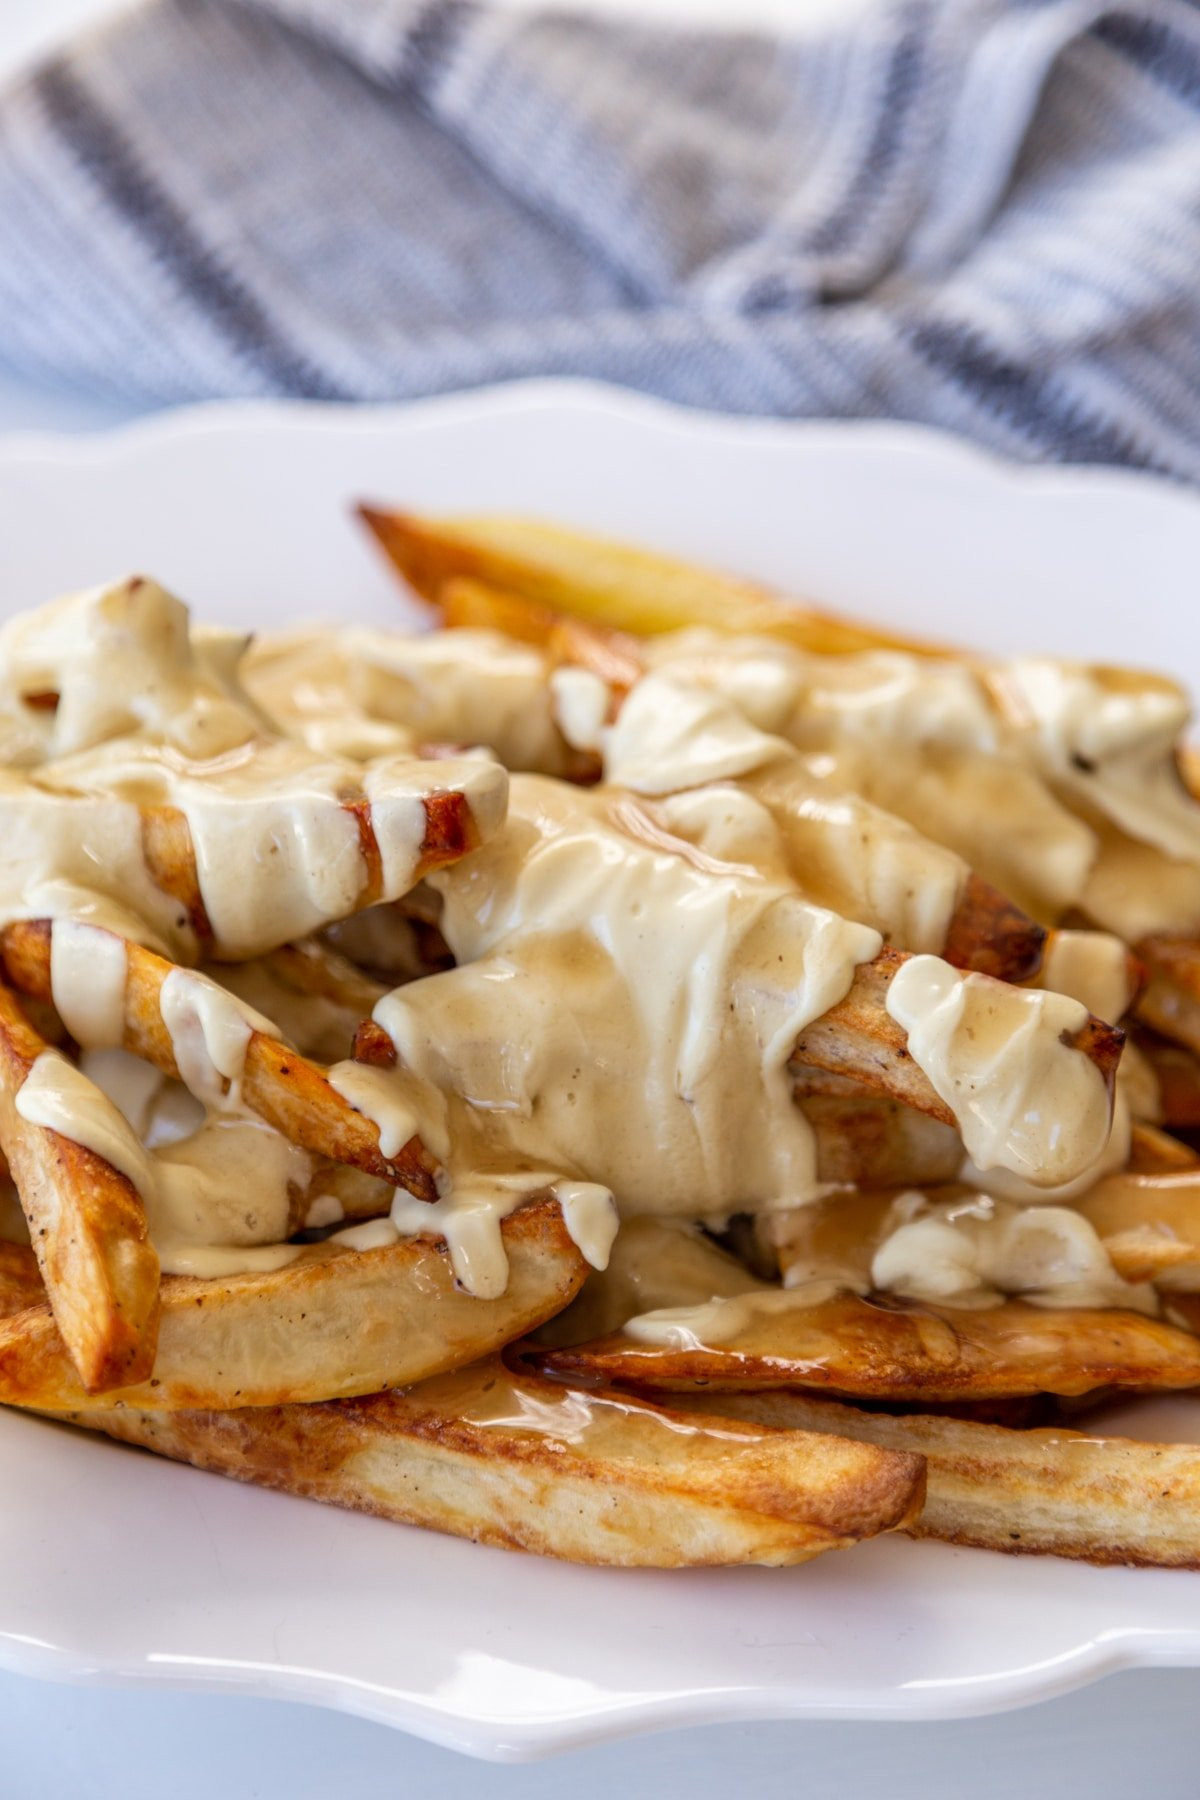 An oval white scalloped platter filled with poutine and a white and black striped towel in the background.